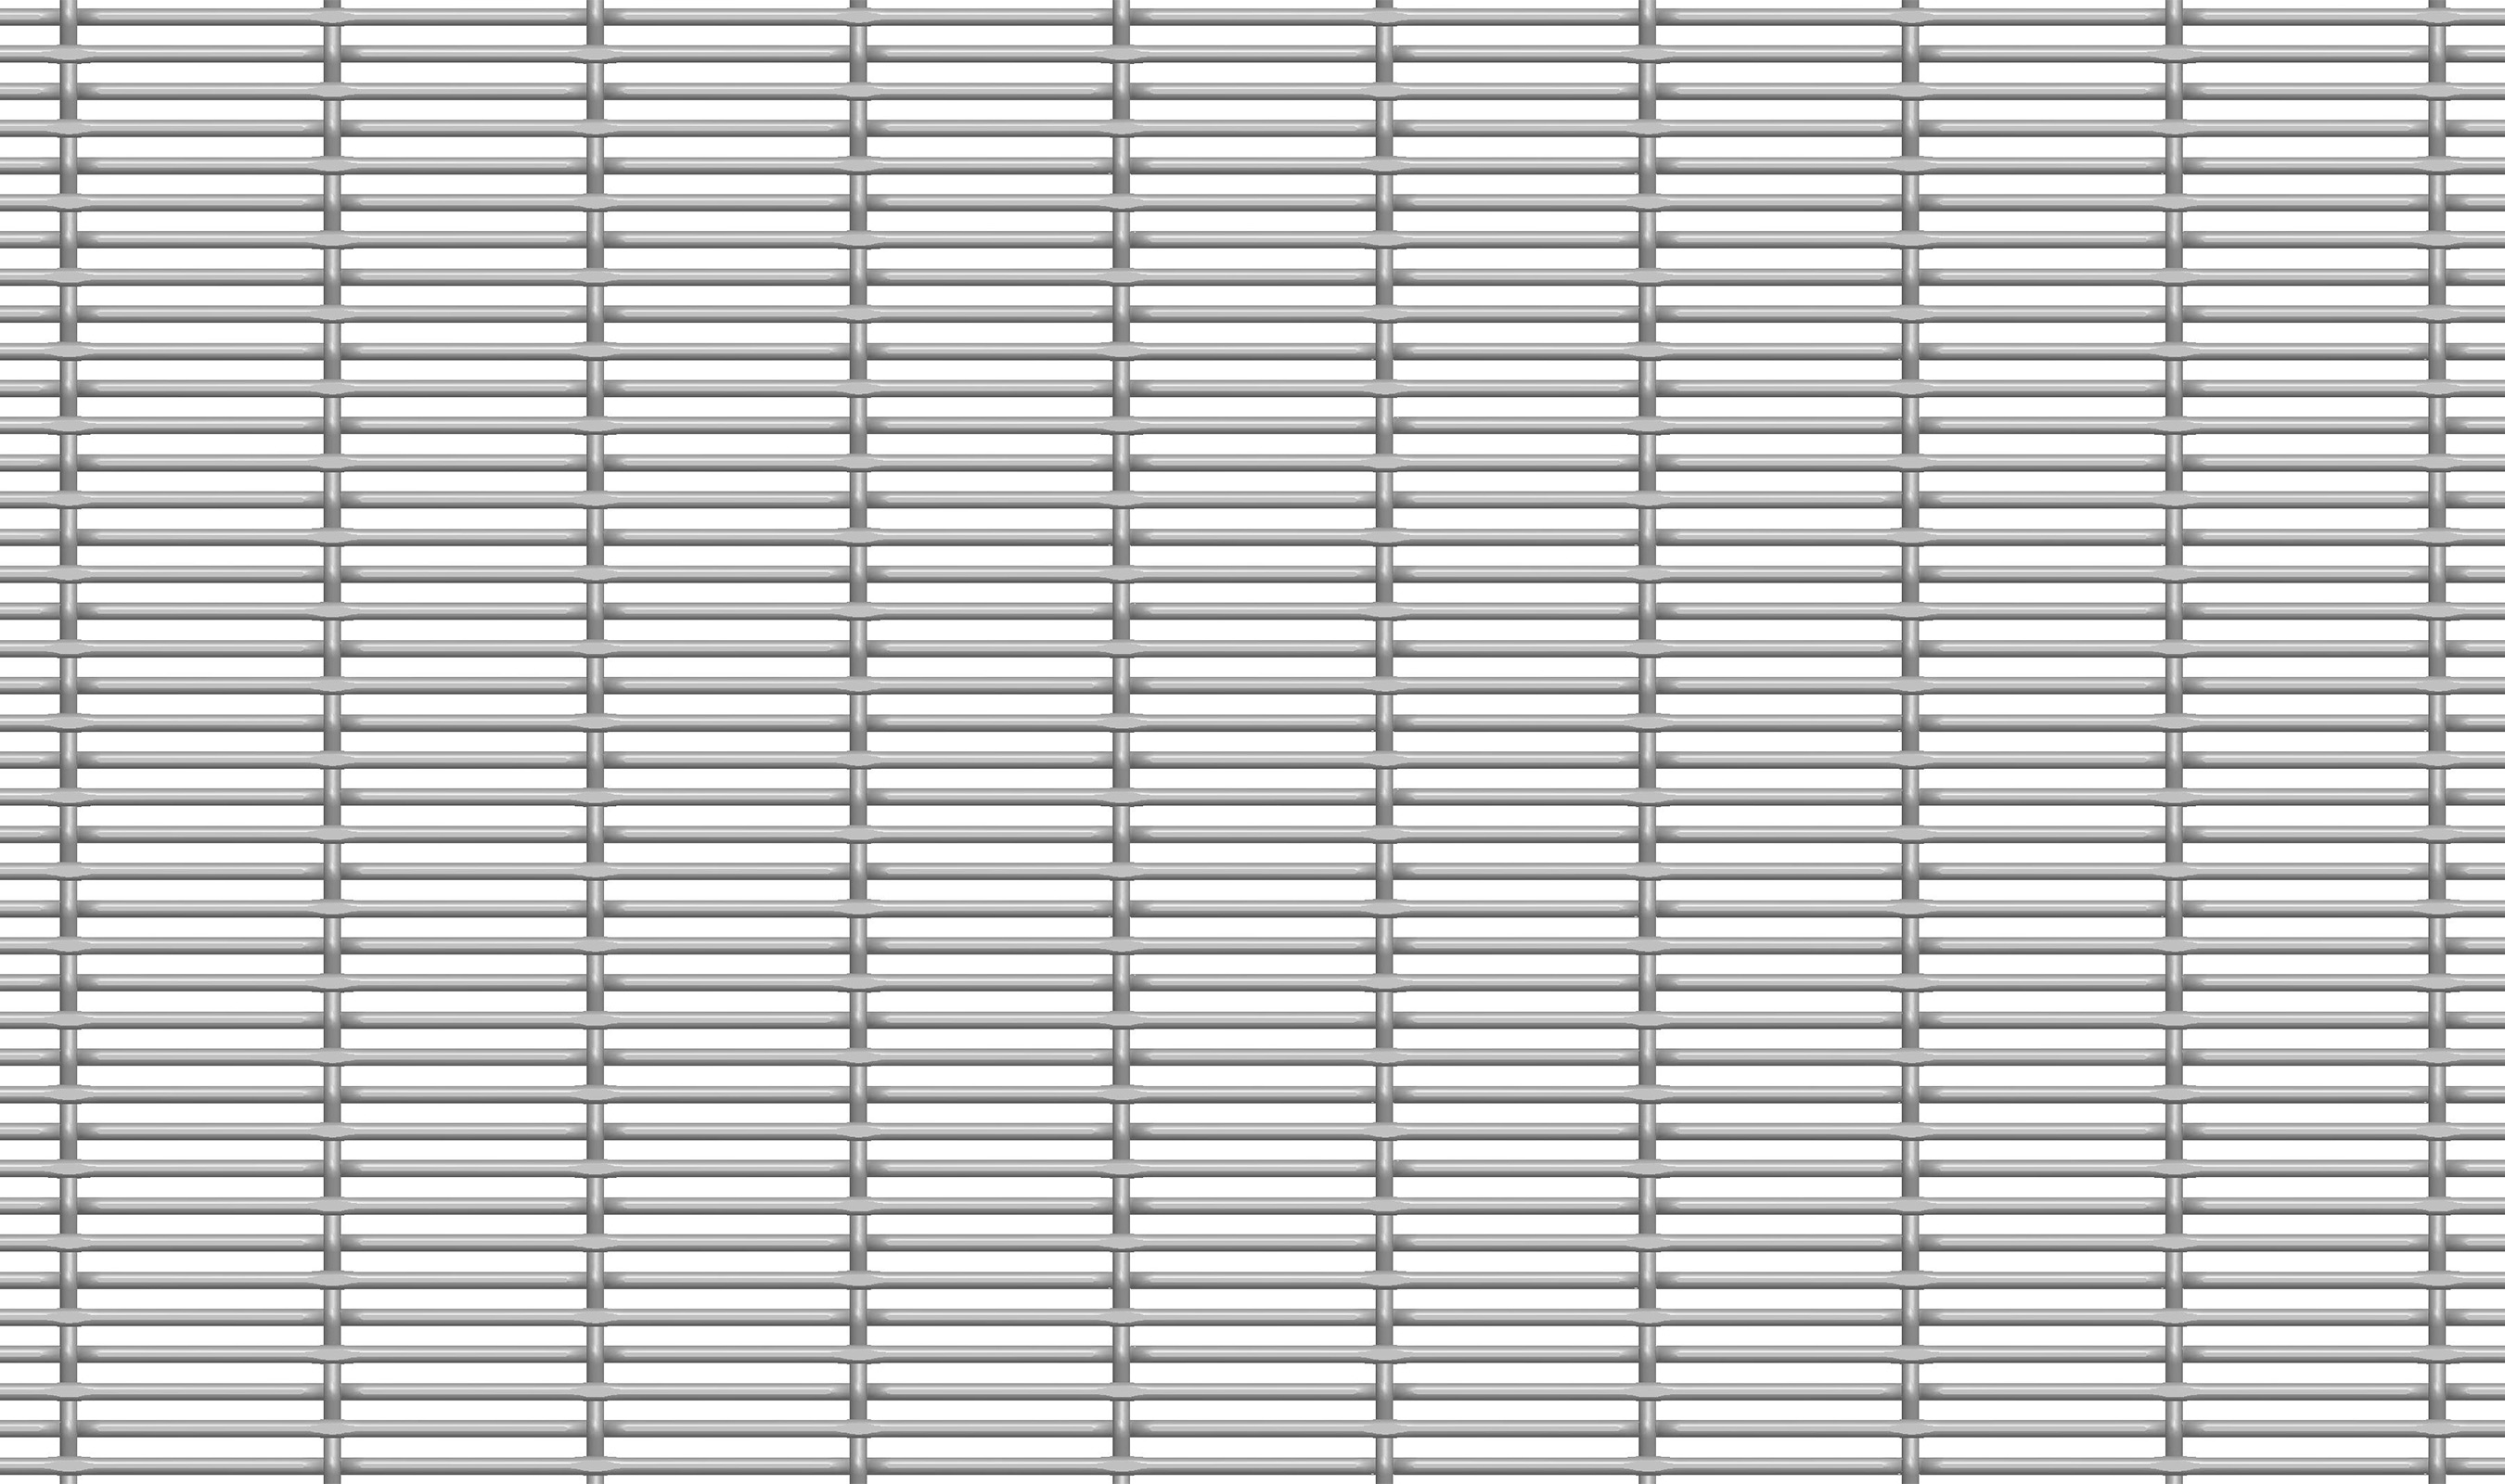 FPZ-55 woven wire mesh in CAD